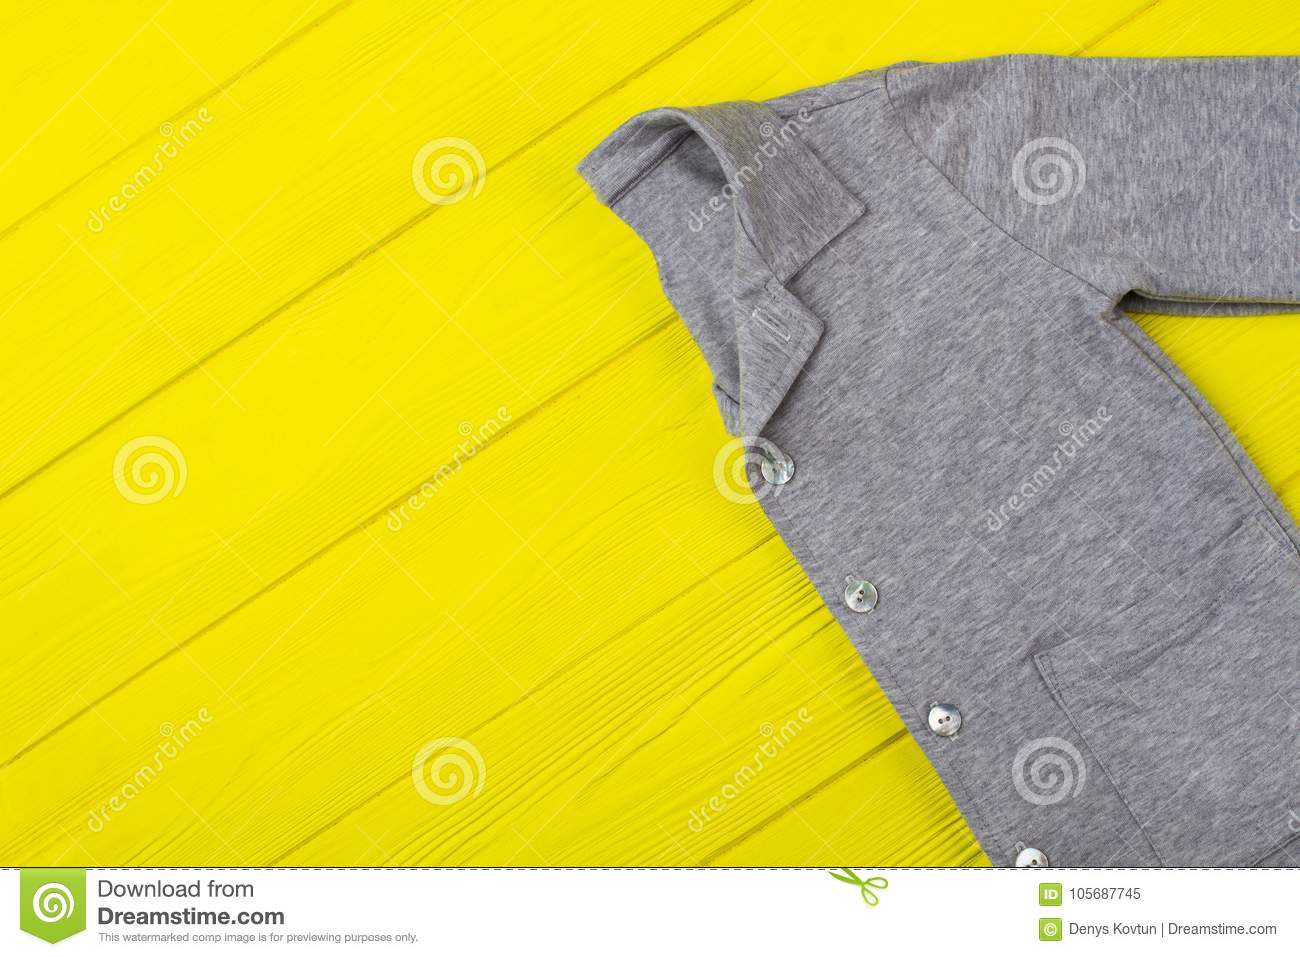 cfc93004bb60 Gray shirt on yellow table. Sale of kids pajama. Bright background for  clothing store.